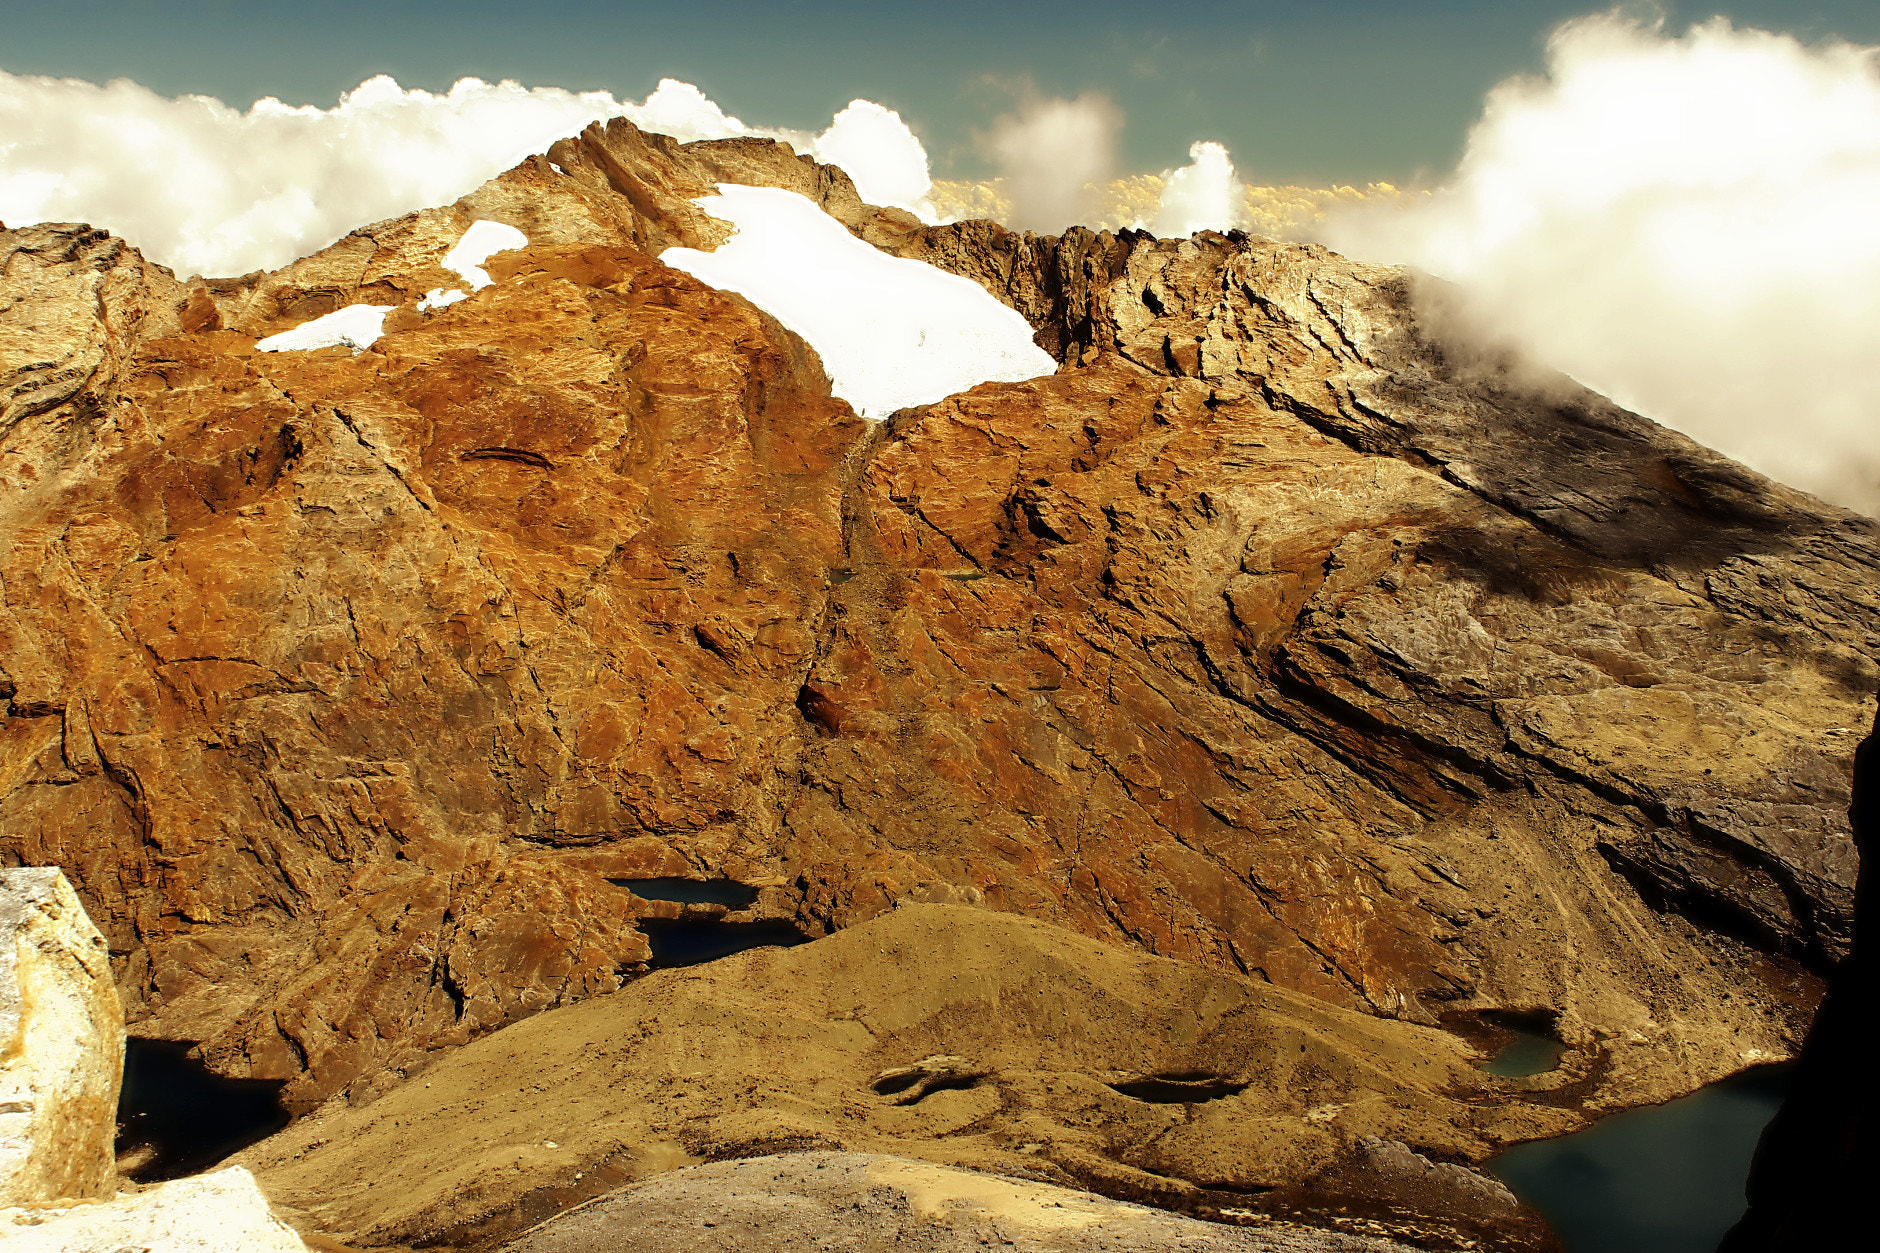 Photograph Rock mountain by Andrés GS on 500px